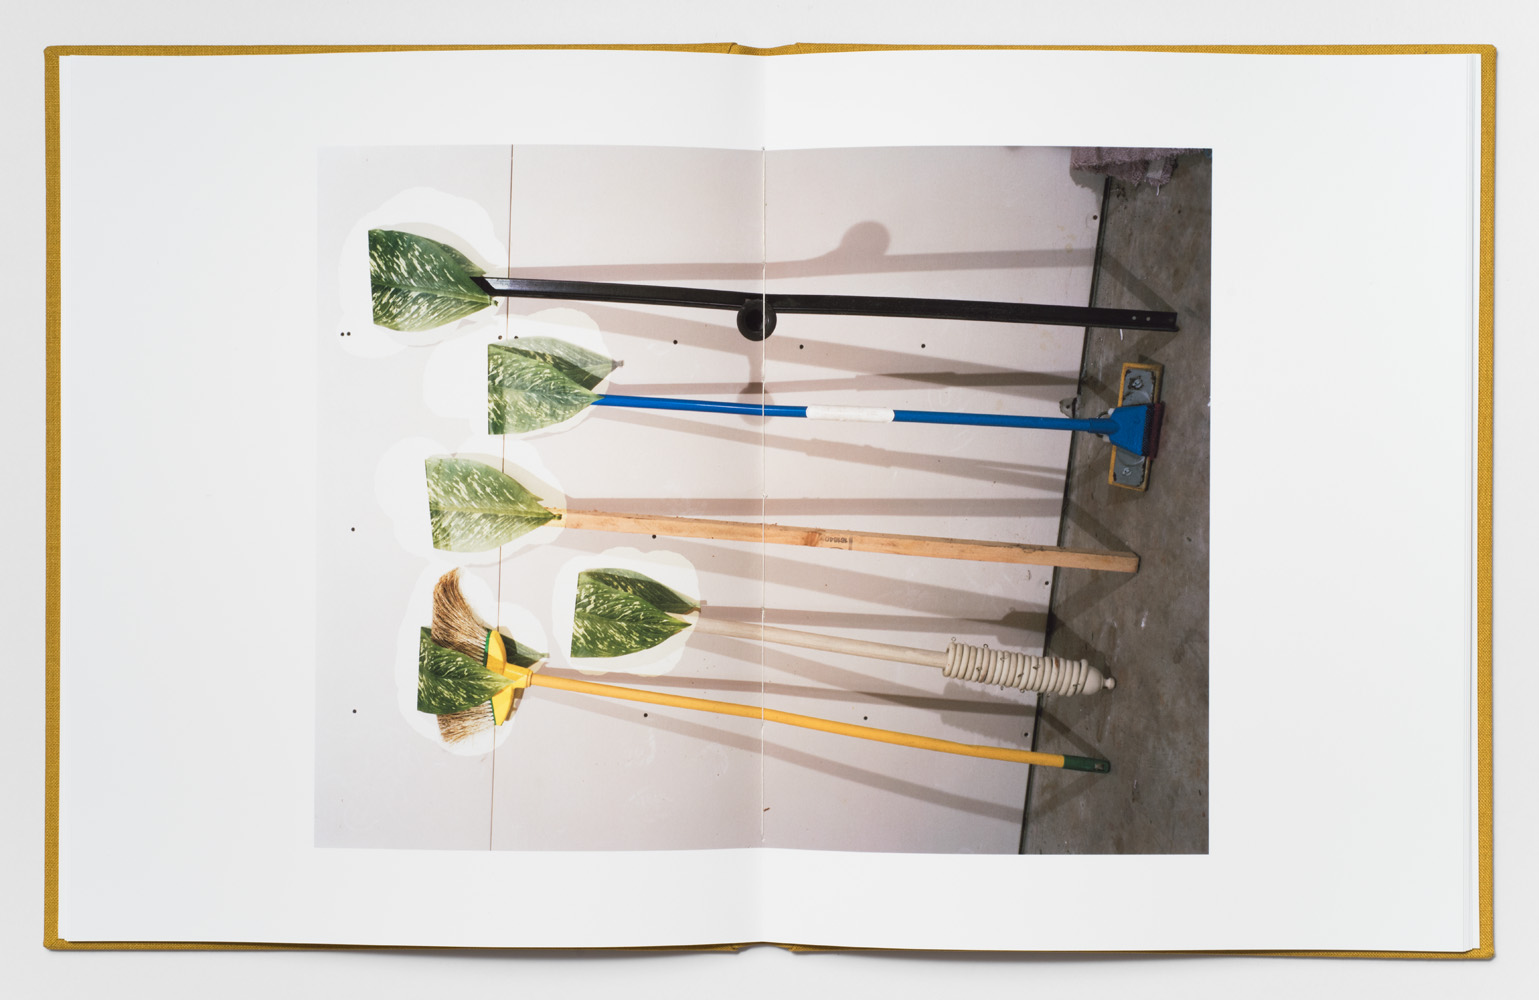 THIMGS (Artist Proof 2)(2014),9 5/16 x 7 7/16 x 7/16 inches,Printed by the artist and hand-bound by Biruta Auna